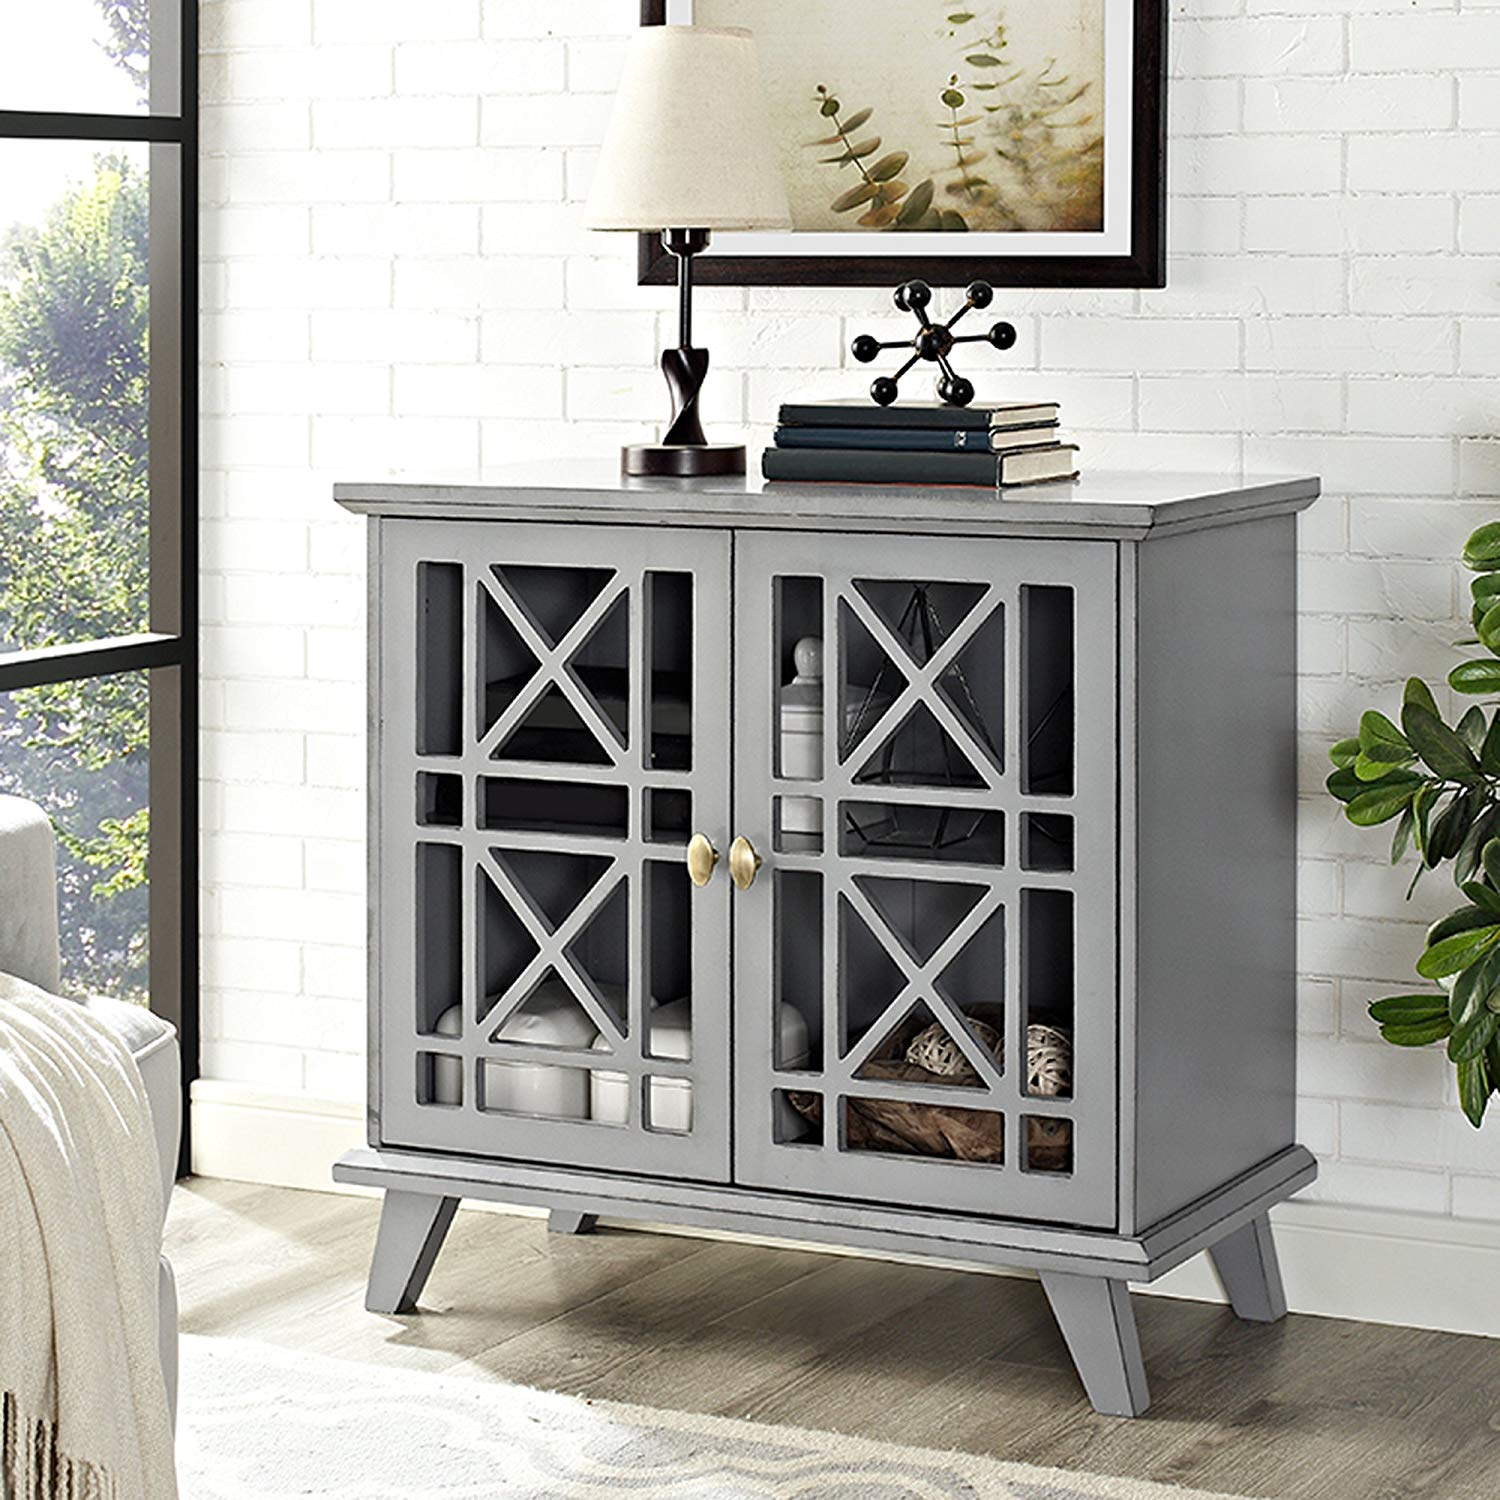 fretwork accent console gray tables threshold table teal garden furniture chairs small wrought iron west elm credenza coffee legs breakfast nautical dining room nate berkus lamp